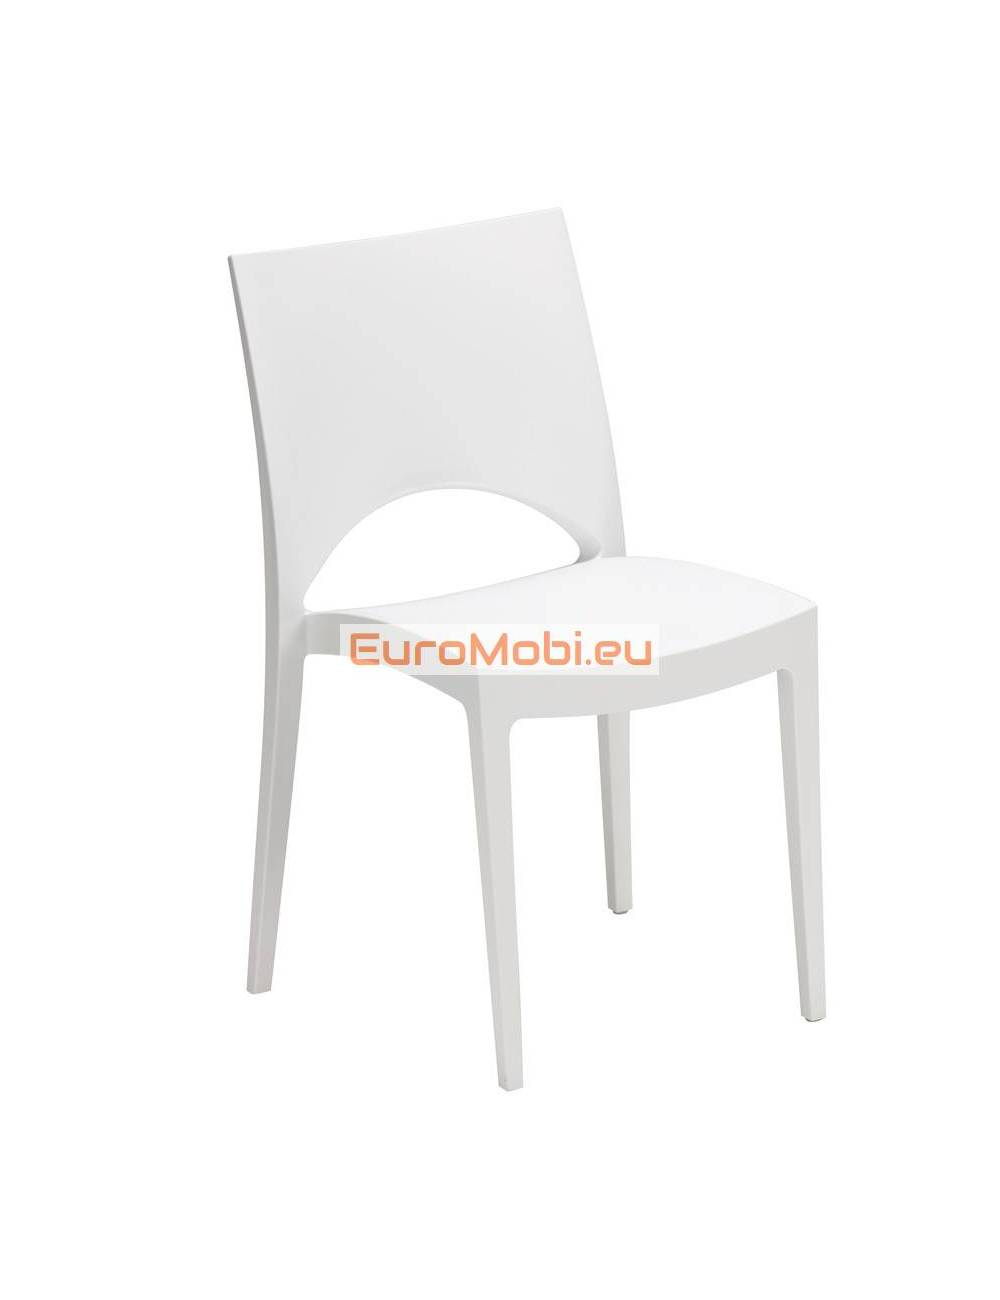 Chaise empilable Cuzy blanche